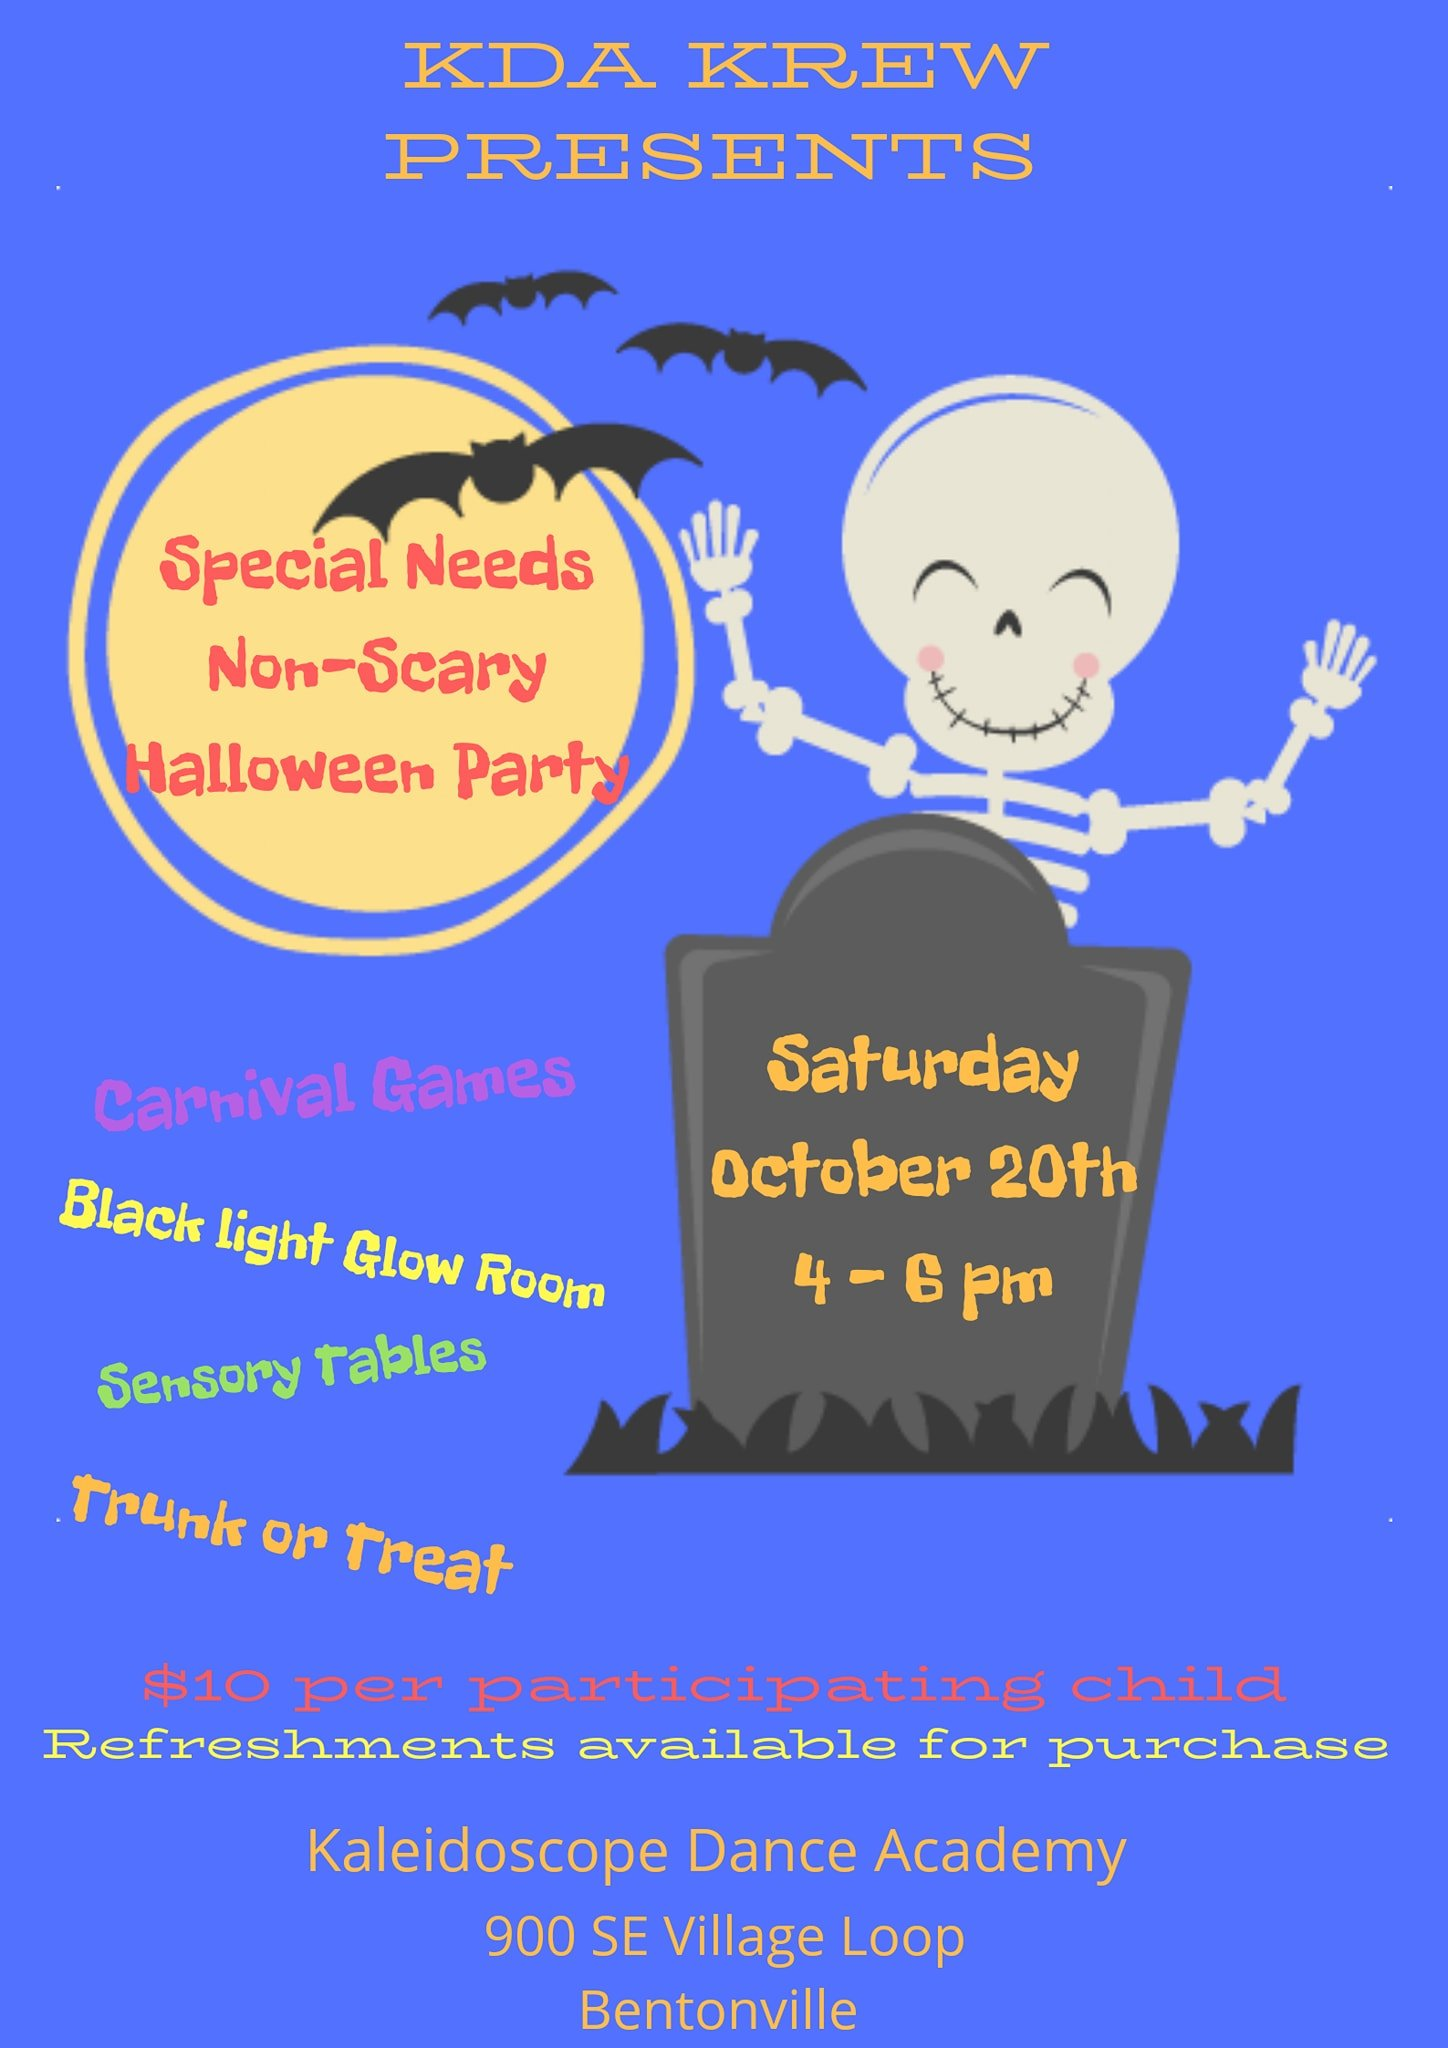 special needs non-scary halloween party @ kaleidoscope dance academy